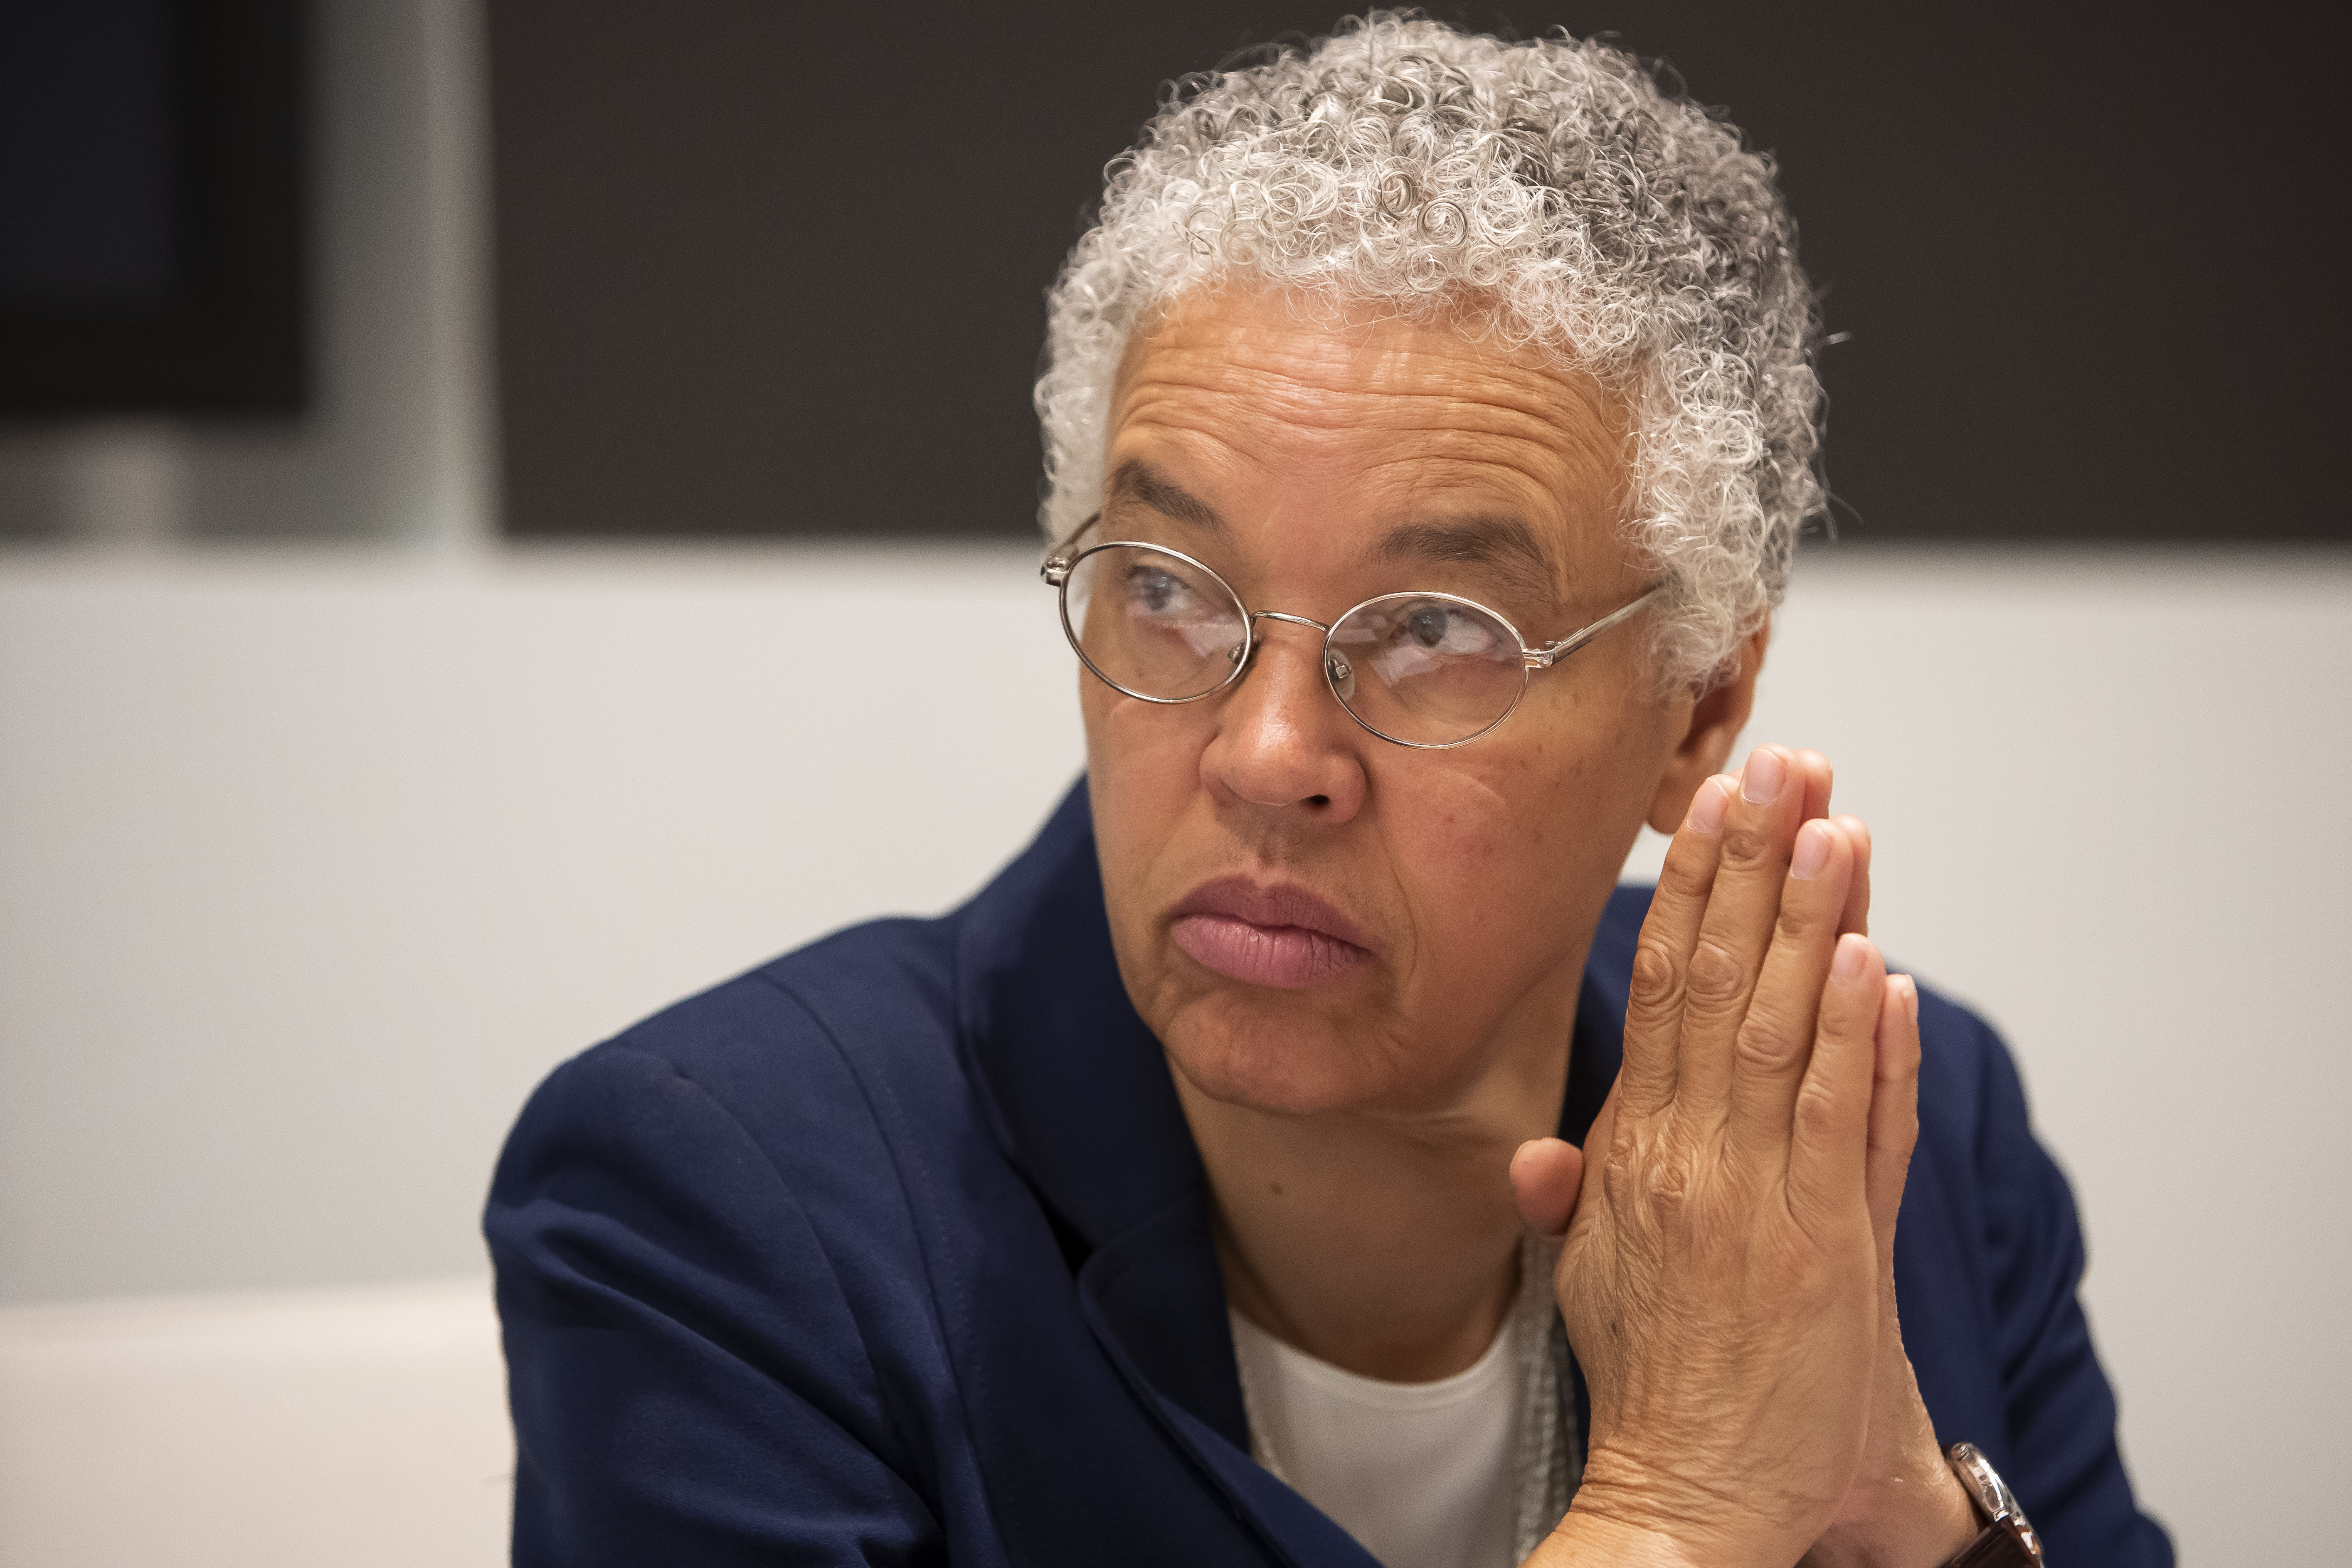 Cook County Board President Toni Preckwinkle met with the Sun-Times Editorial Board October 10, 2019.